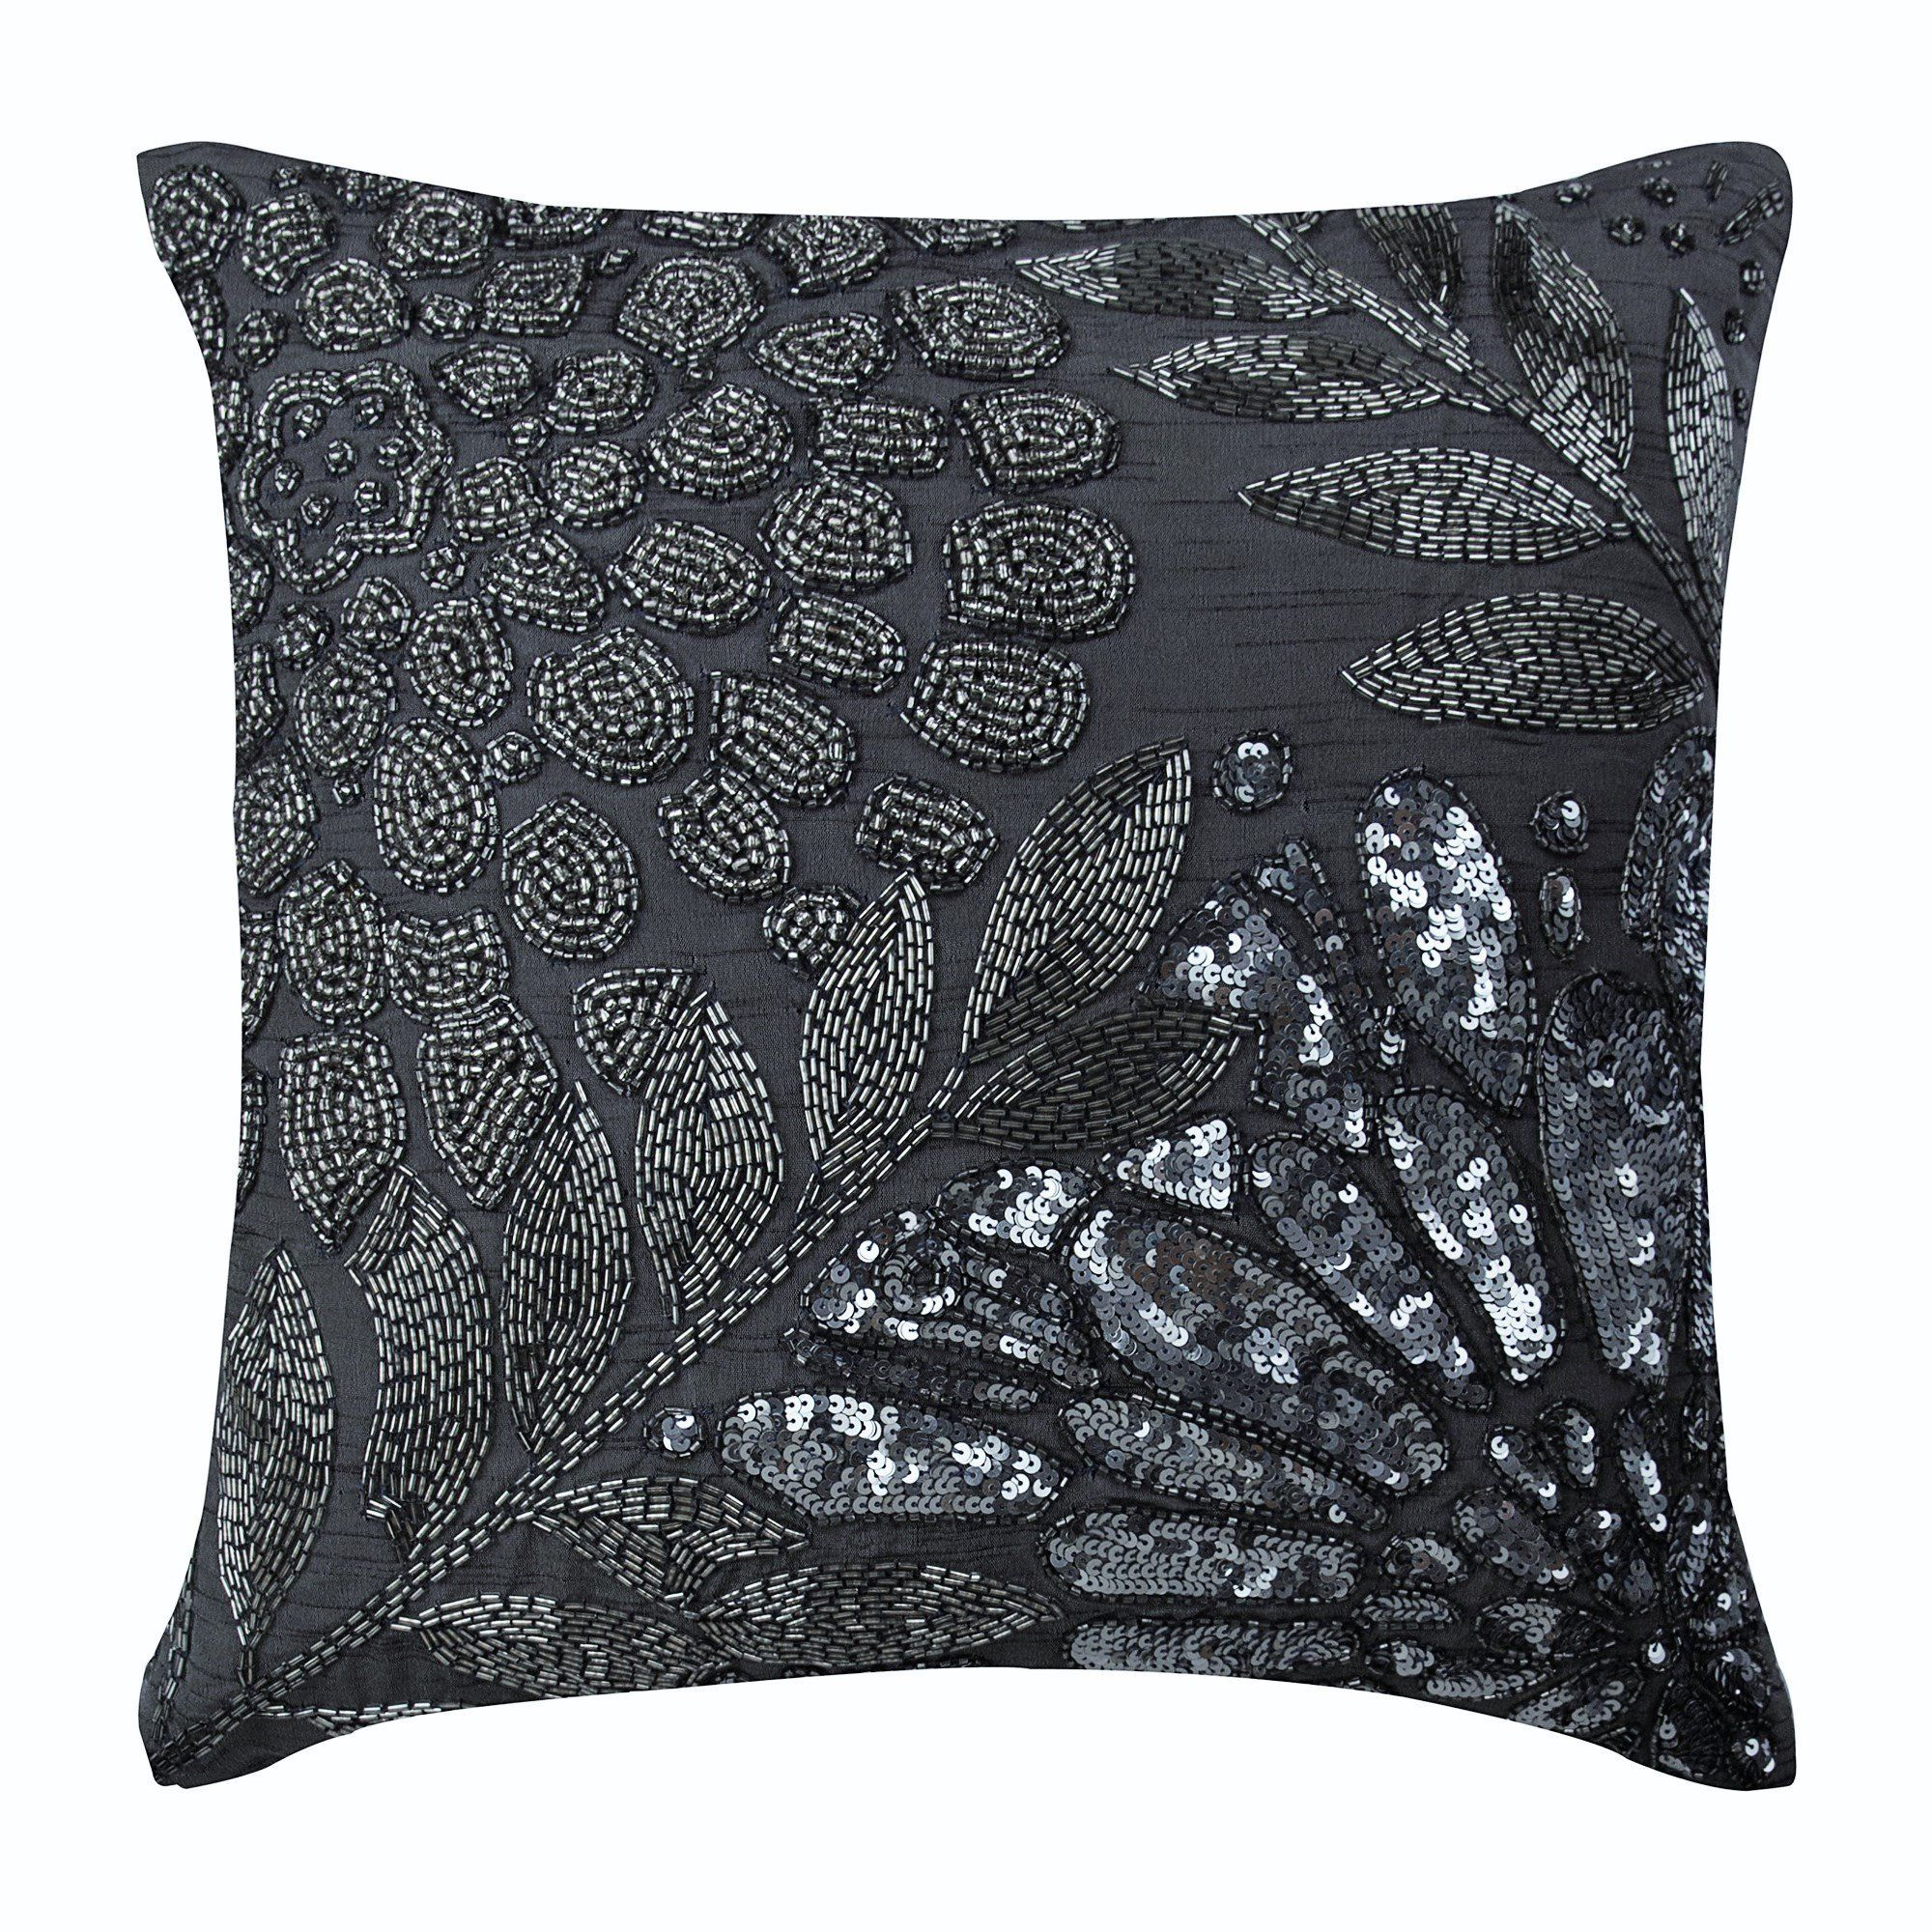 Decorative Gray Couch Cushion 12 X12 Art Silk Throw Pillow Cover Sequins Cushion Pillow Nature Floral Home Decor Grey N Silver Garden Floral Pillow Cover Silk Pillow Cover Grey Pillow